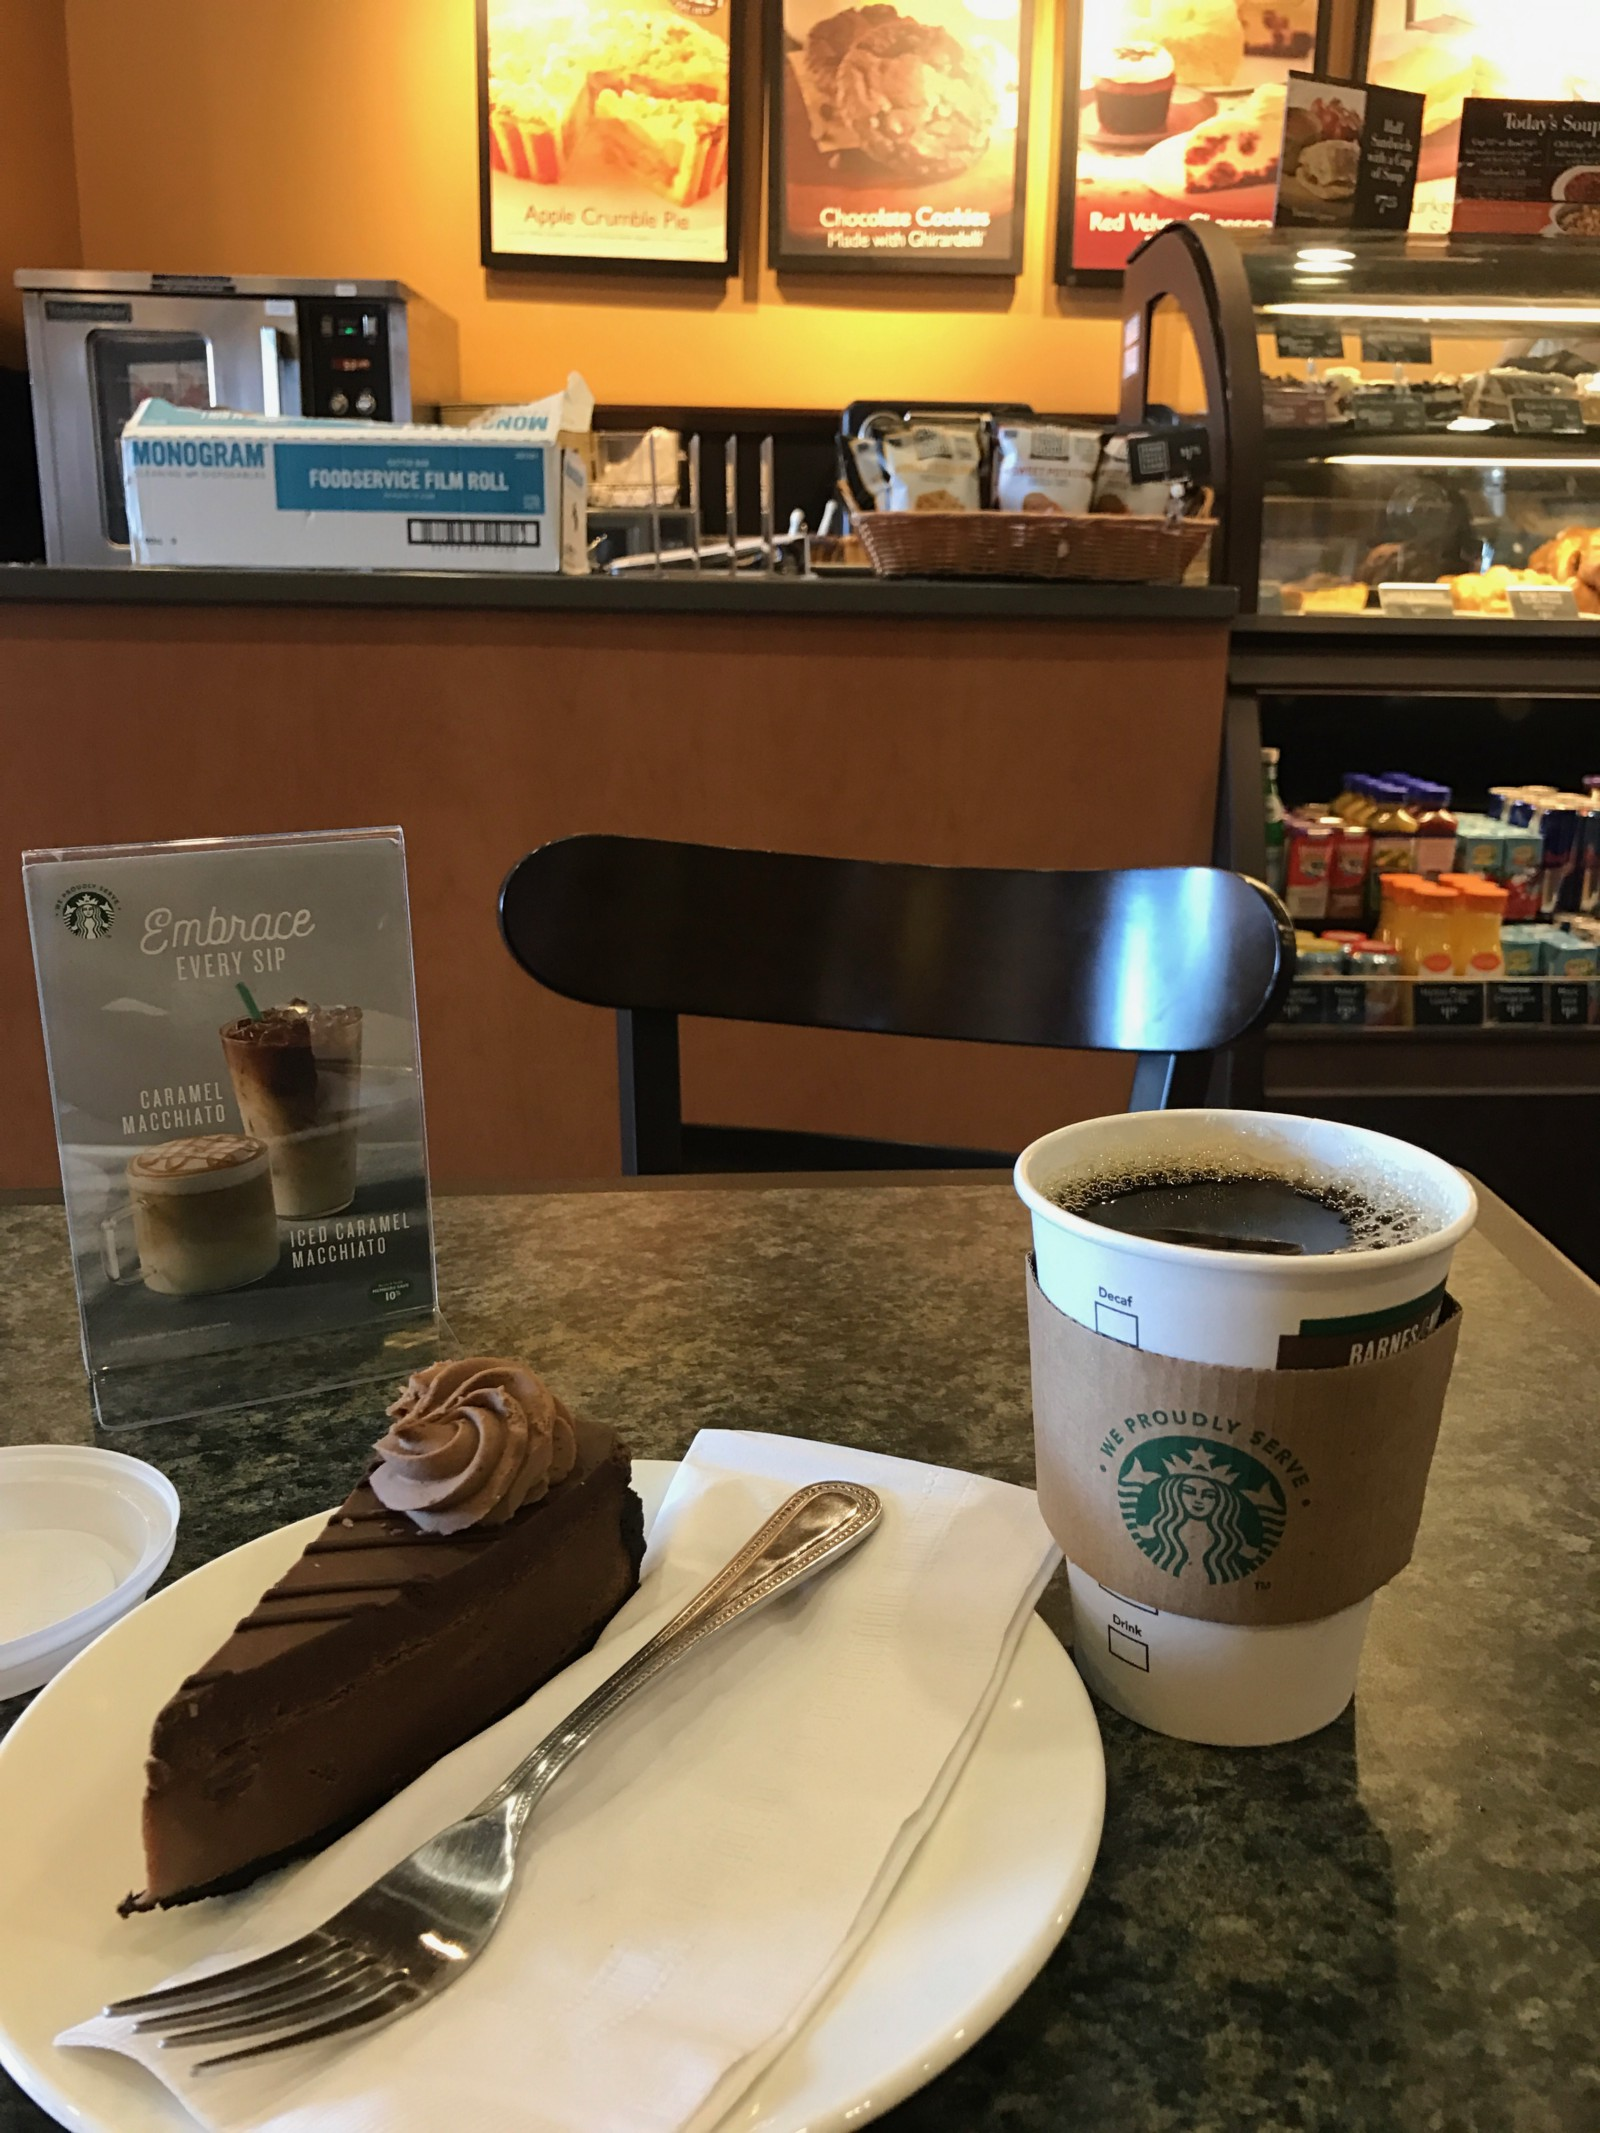 Barnes and Noble Starbucks Cheesecake Factory – Technicat on Media